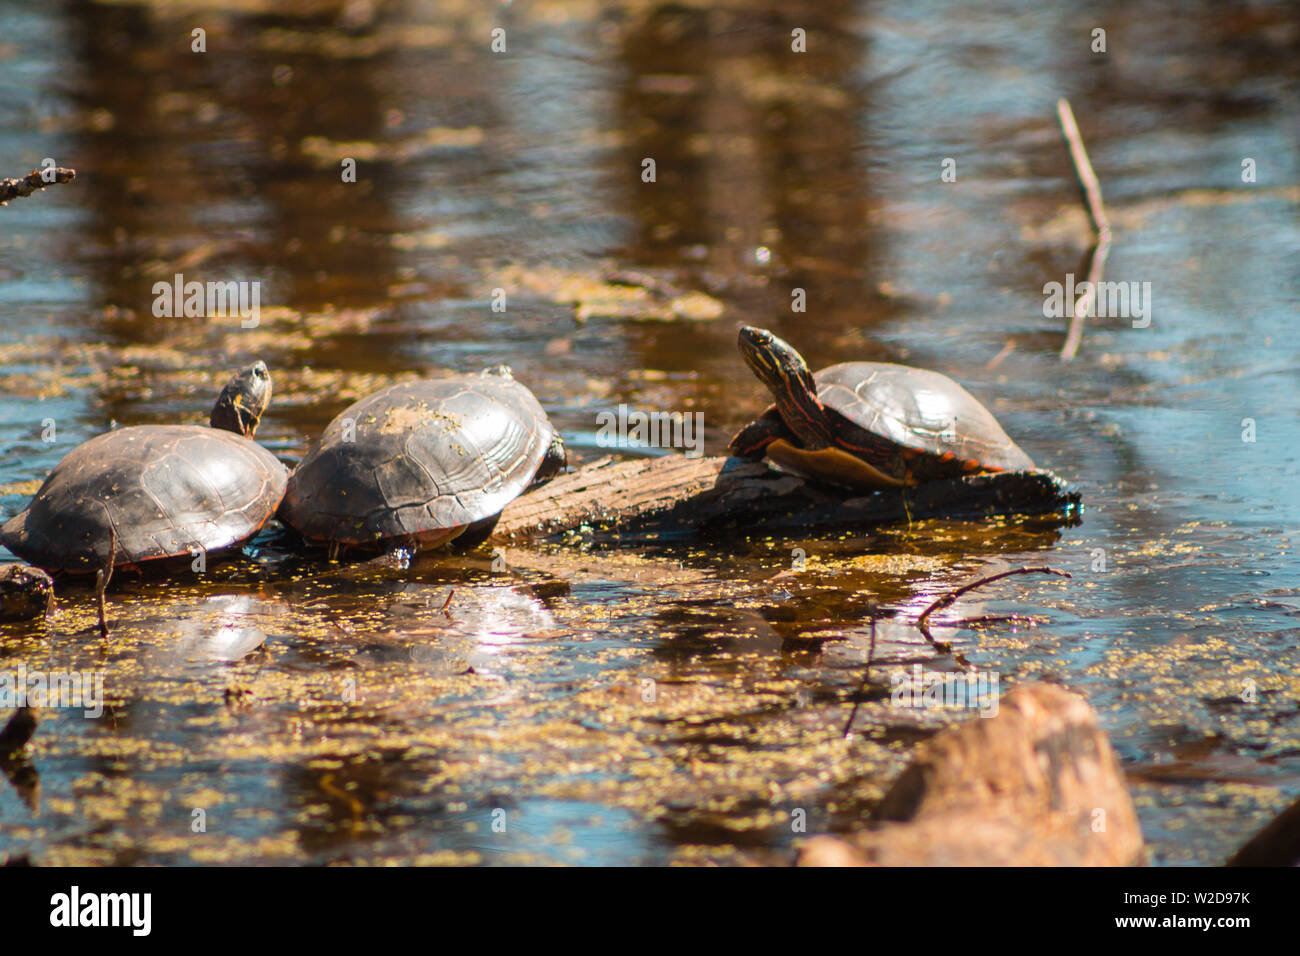 Turtles swimming to a branch in a bond - Stock Image